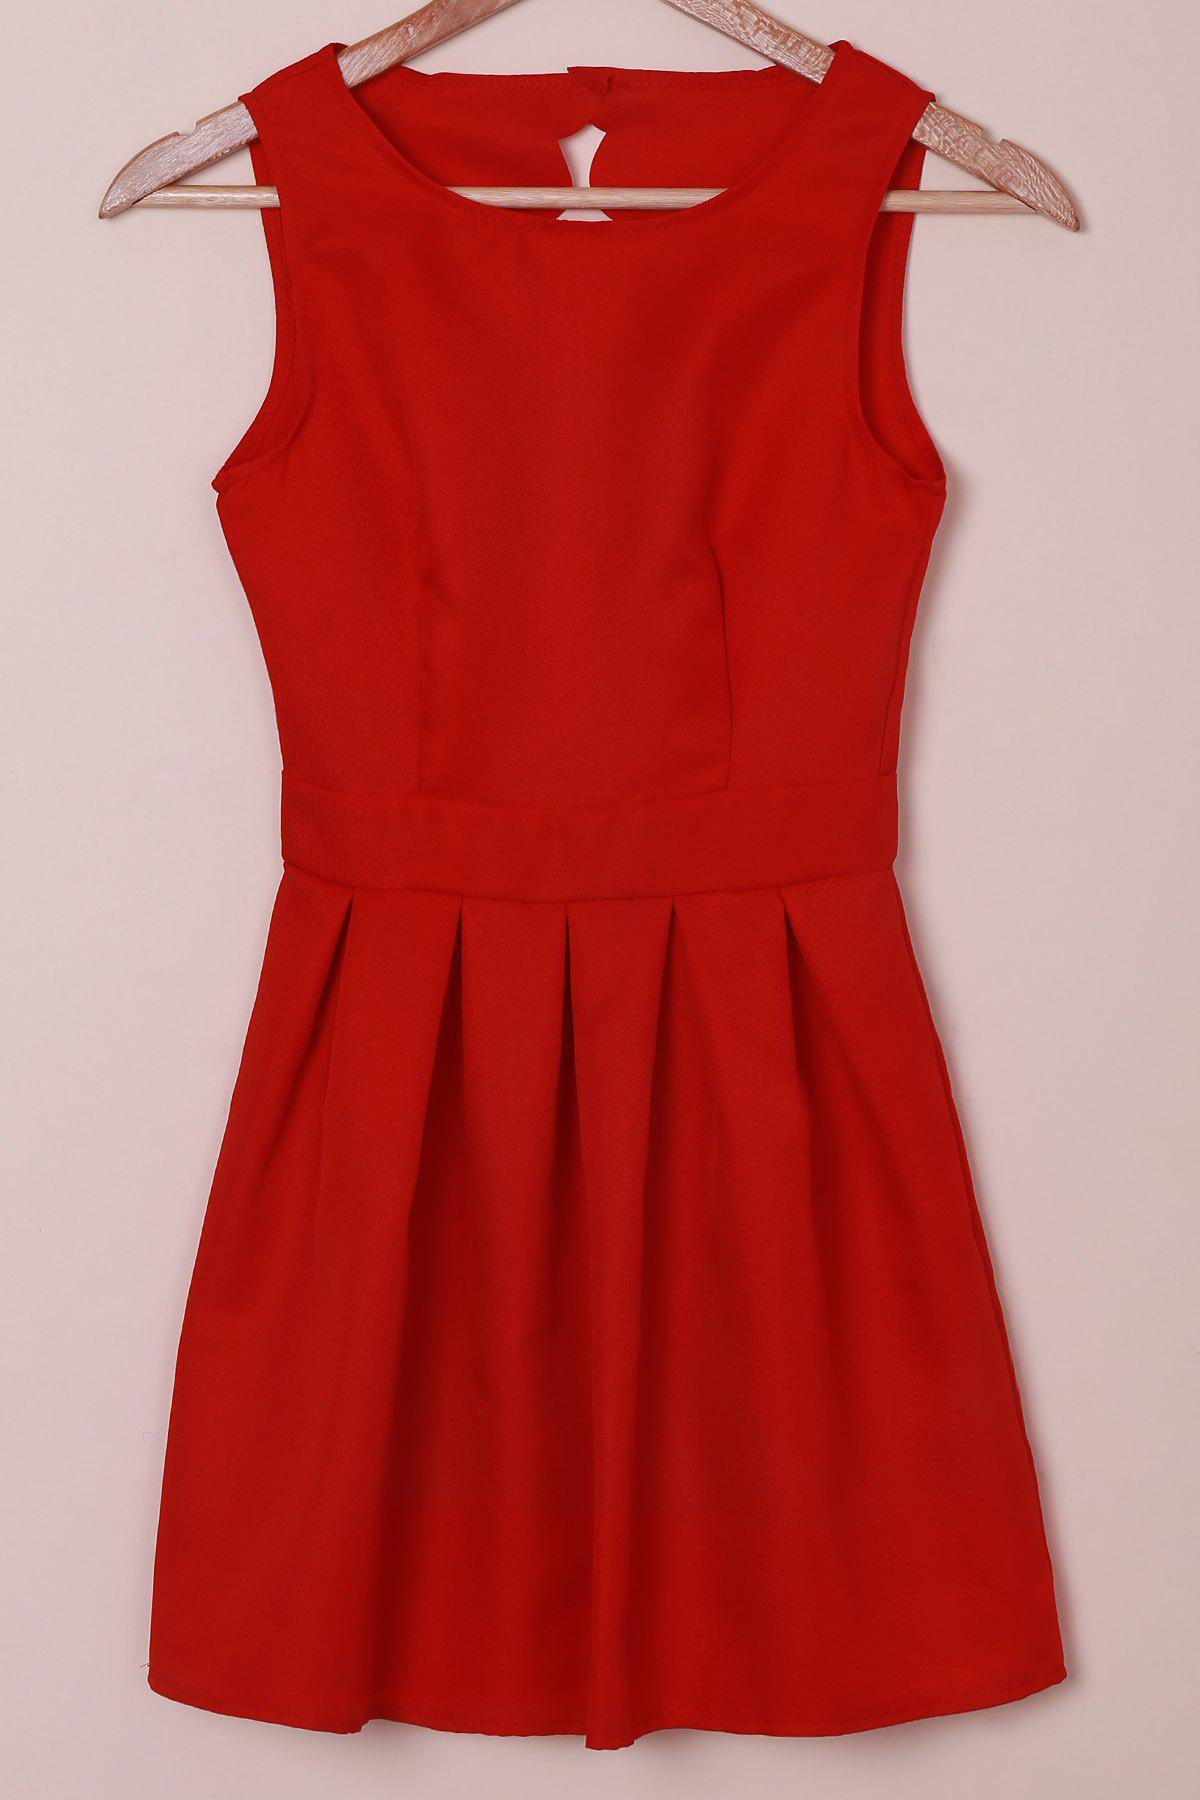 Elegant Round Collar Sleeveless Scalloped Hollow Out Red Women's Dress - RED S